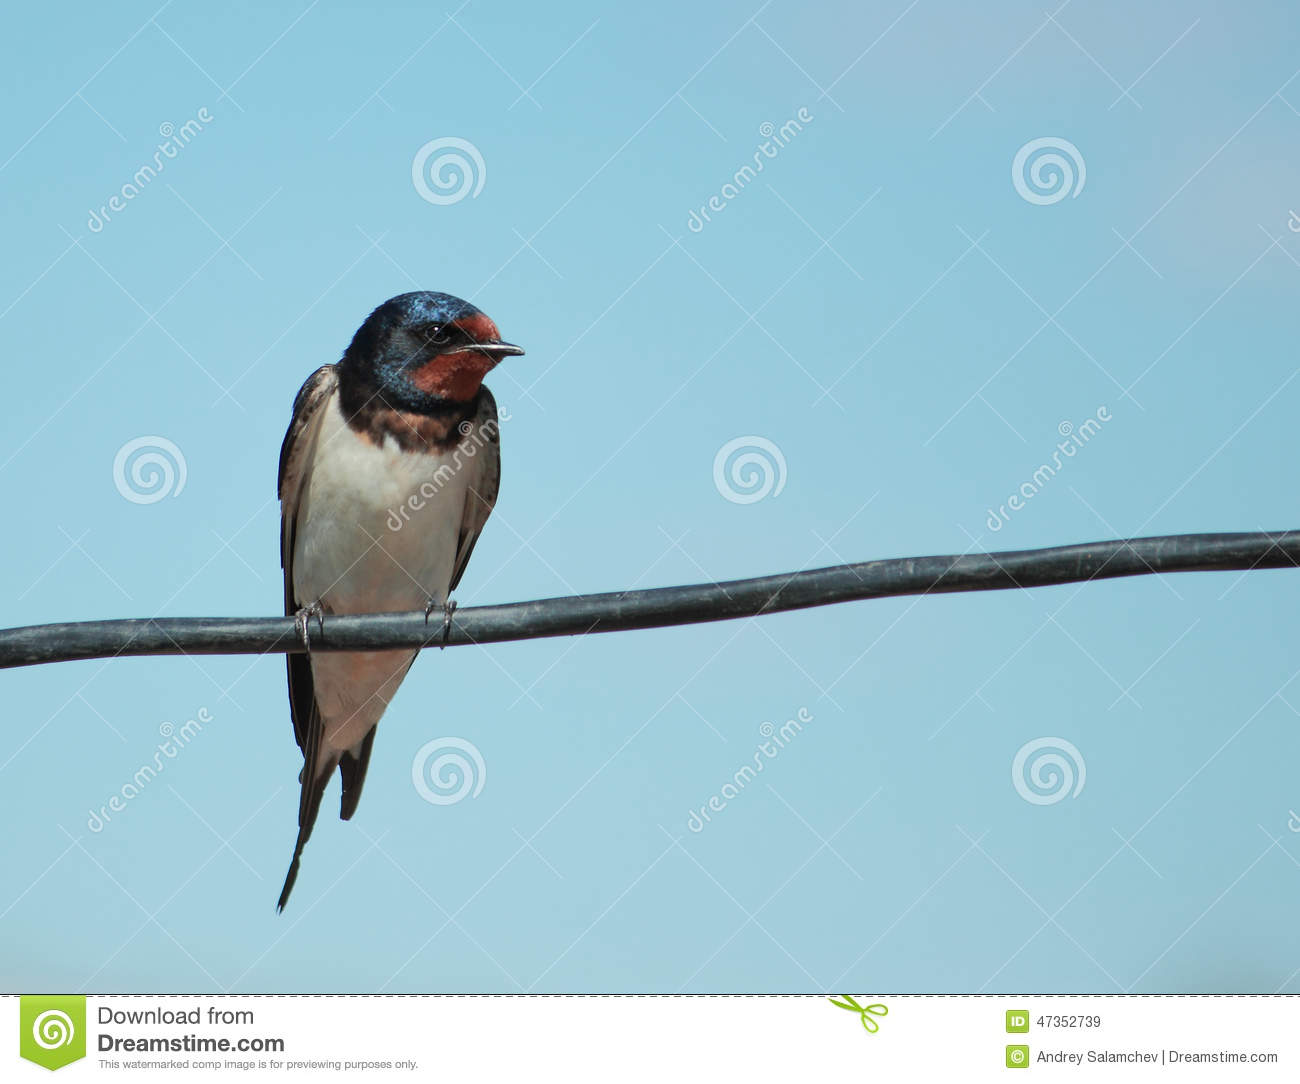 Barn swallow sit on wire stock image. Image of nature - 47352739